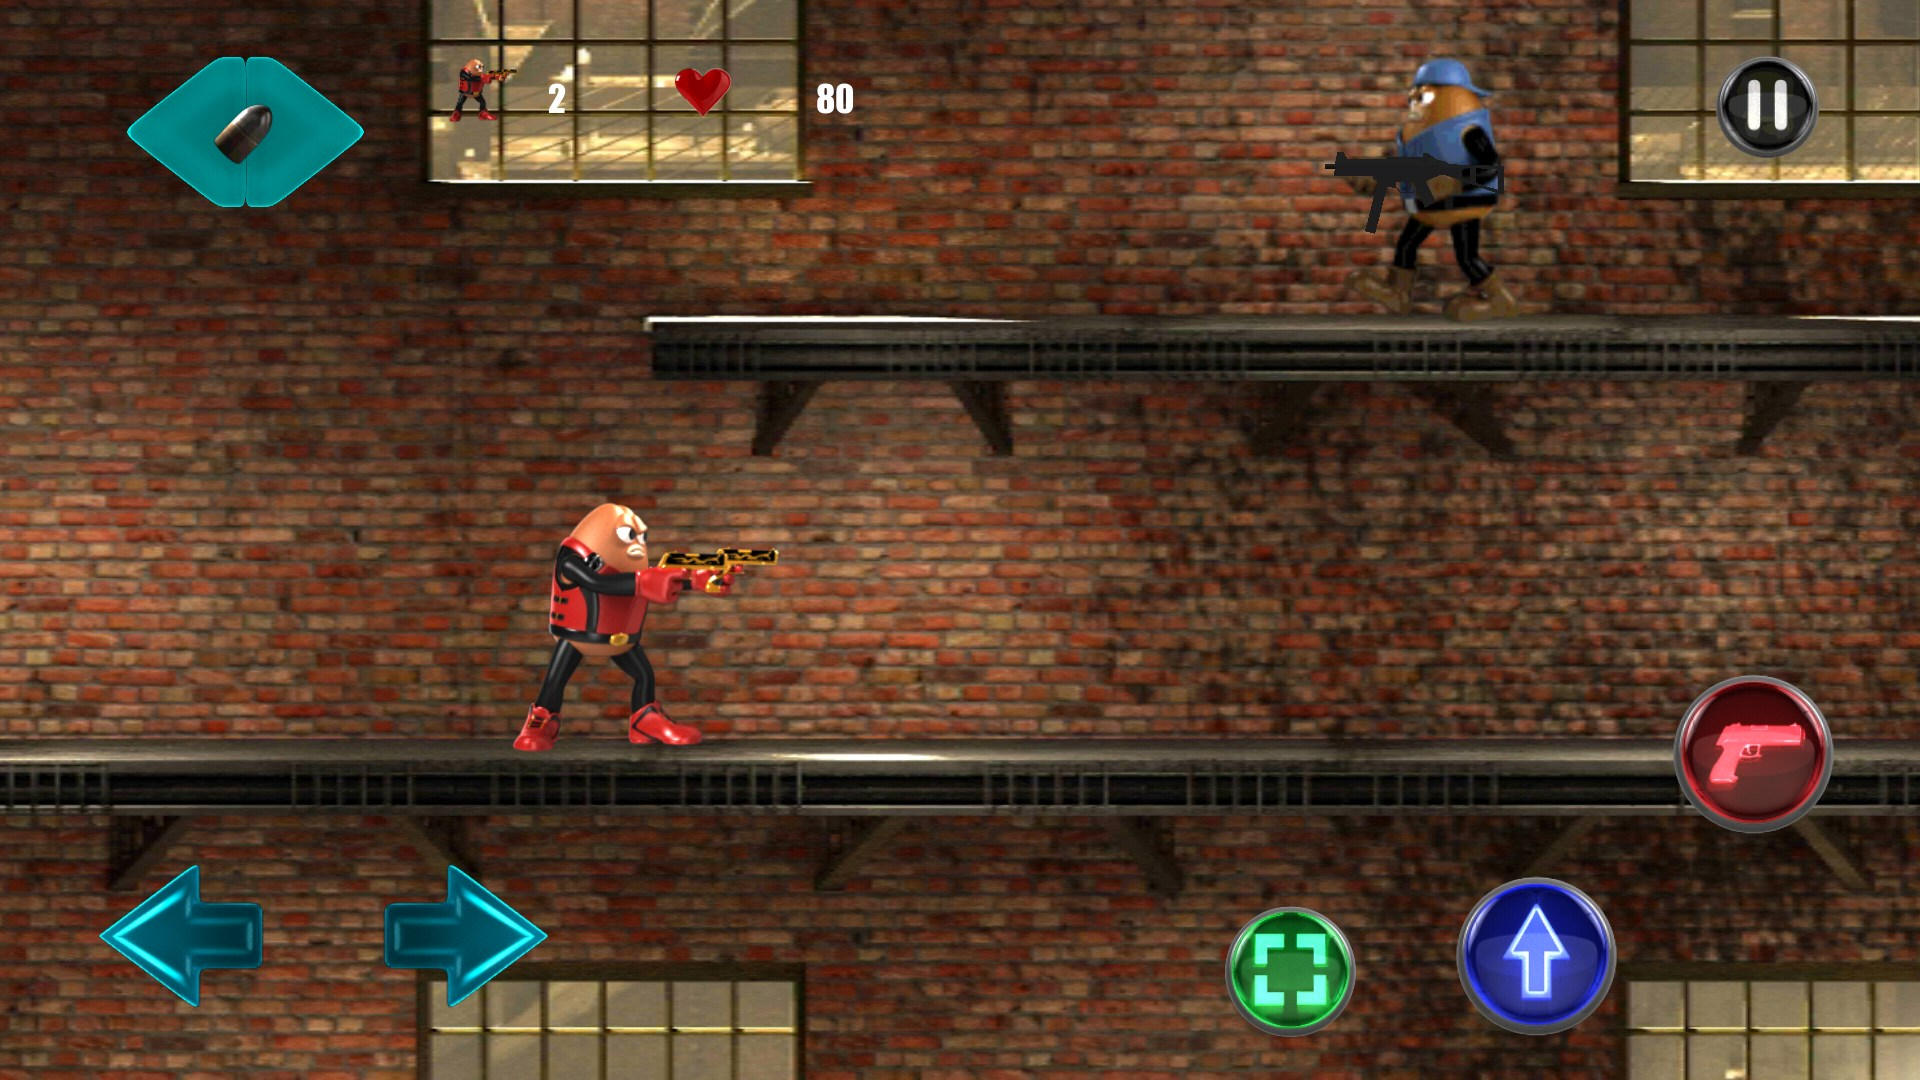 Killer Bean Unleashed — Storming action with endless shooting